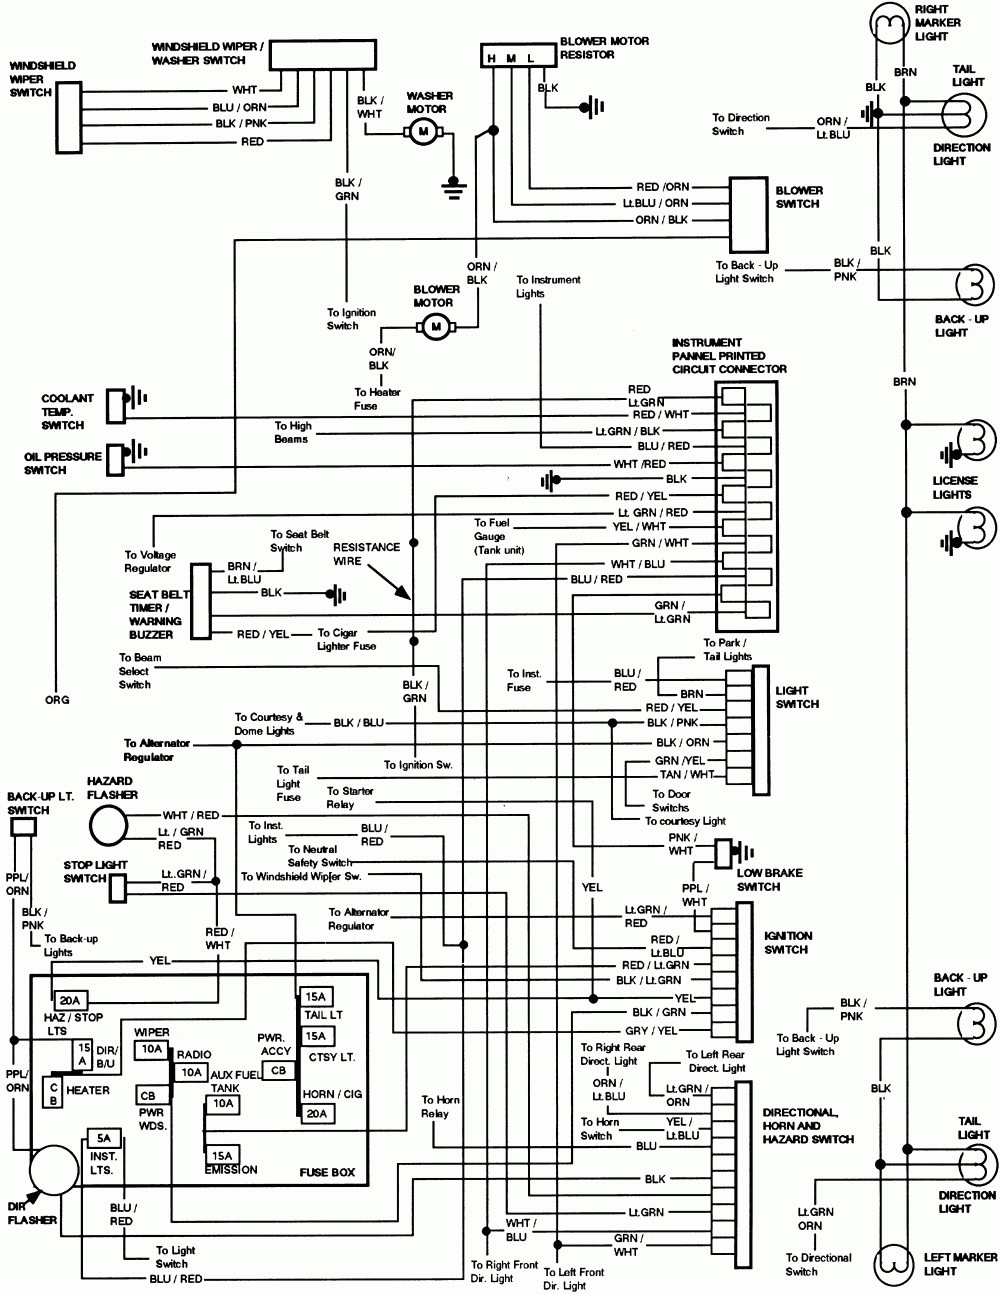 2008ford F150 Ignition Switch Diagram - Data Wiring Diagram Update